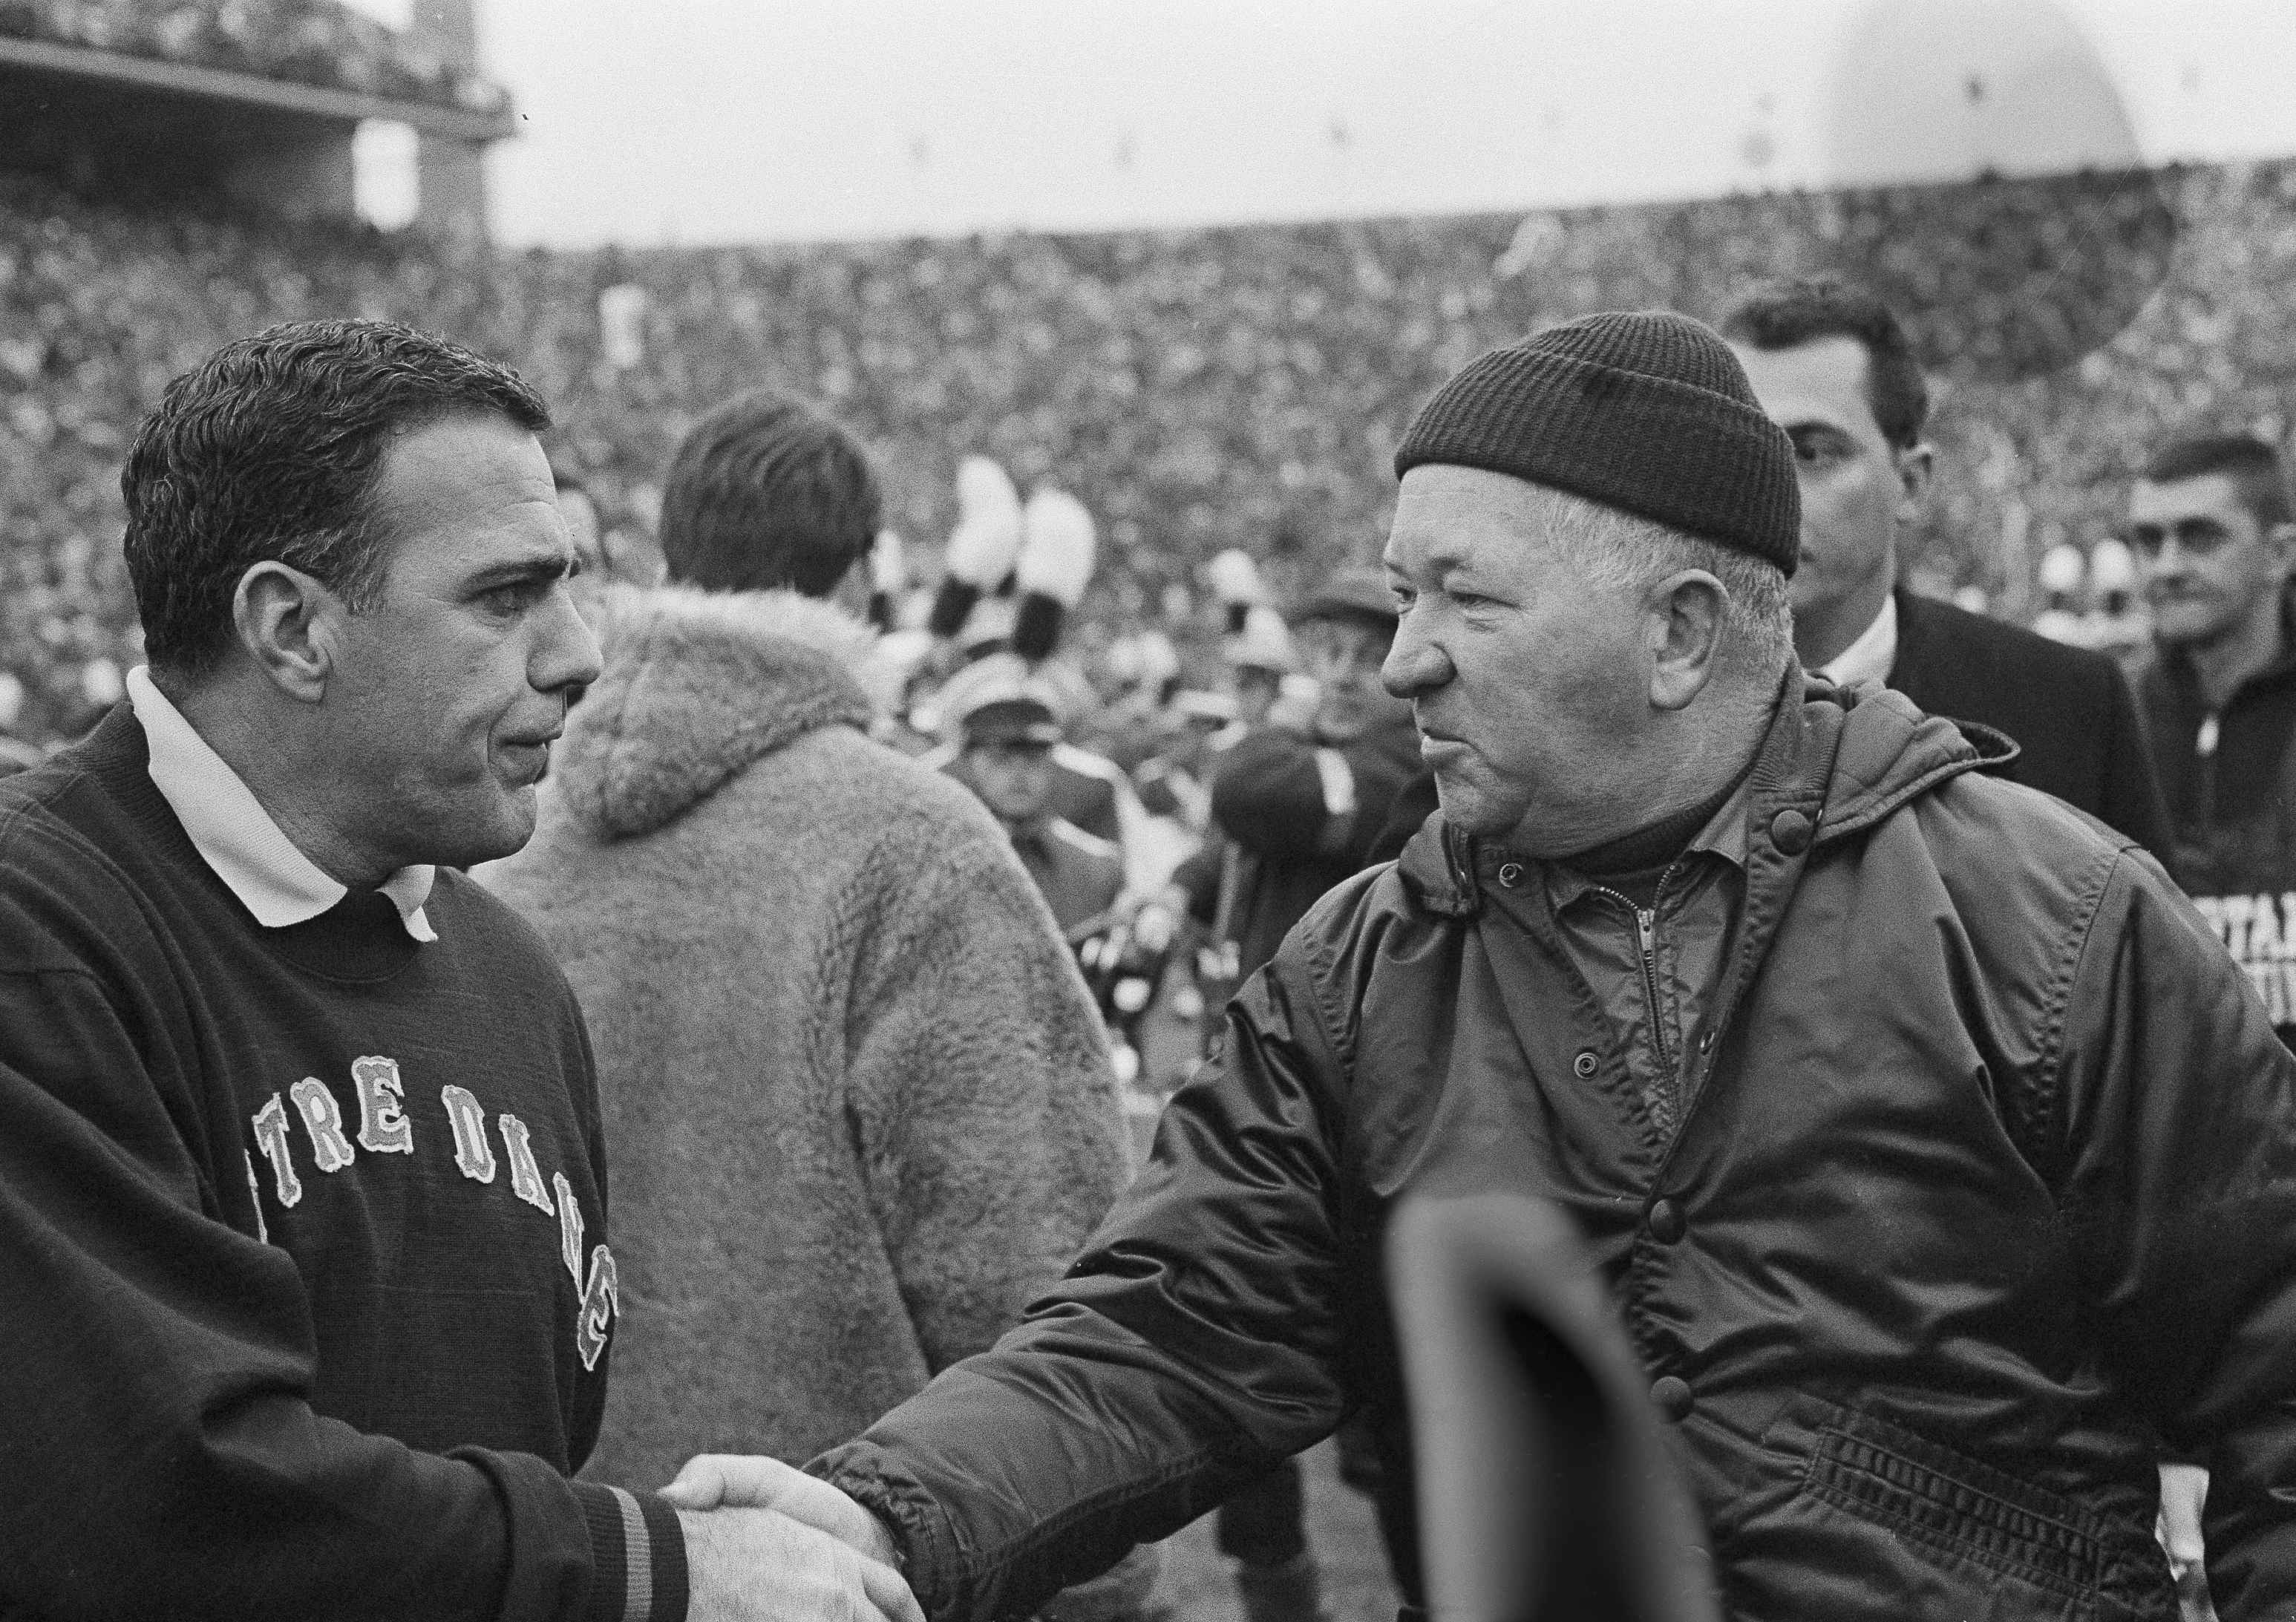 FILE - In this Nov. 19, 1966, file photo, Notre Dame football coach Ara Parseghian, left, shakes hands with Michigan State coach Duffy Daugherty after their 10-10 tie in East Lansing, Mich. Parseghian still bristles 50 years later at the notion that No. 1